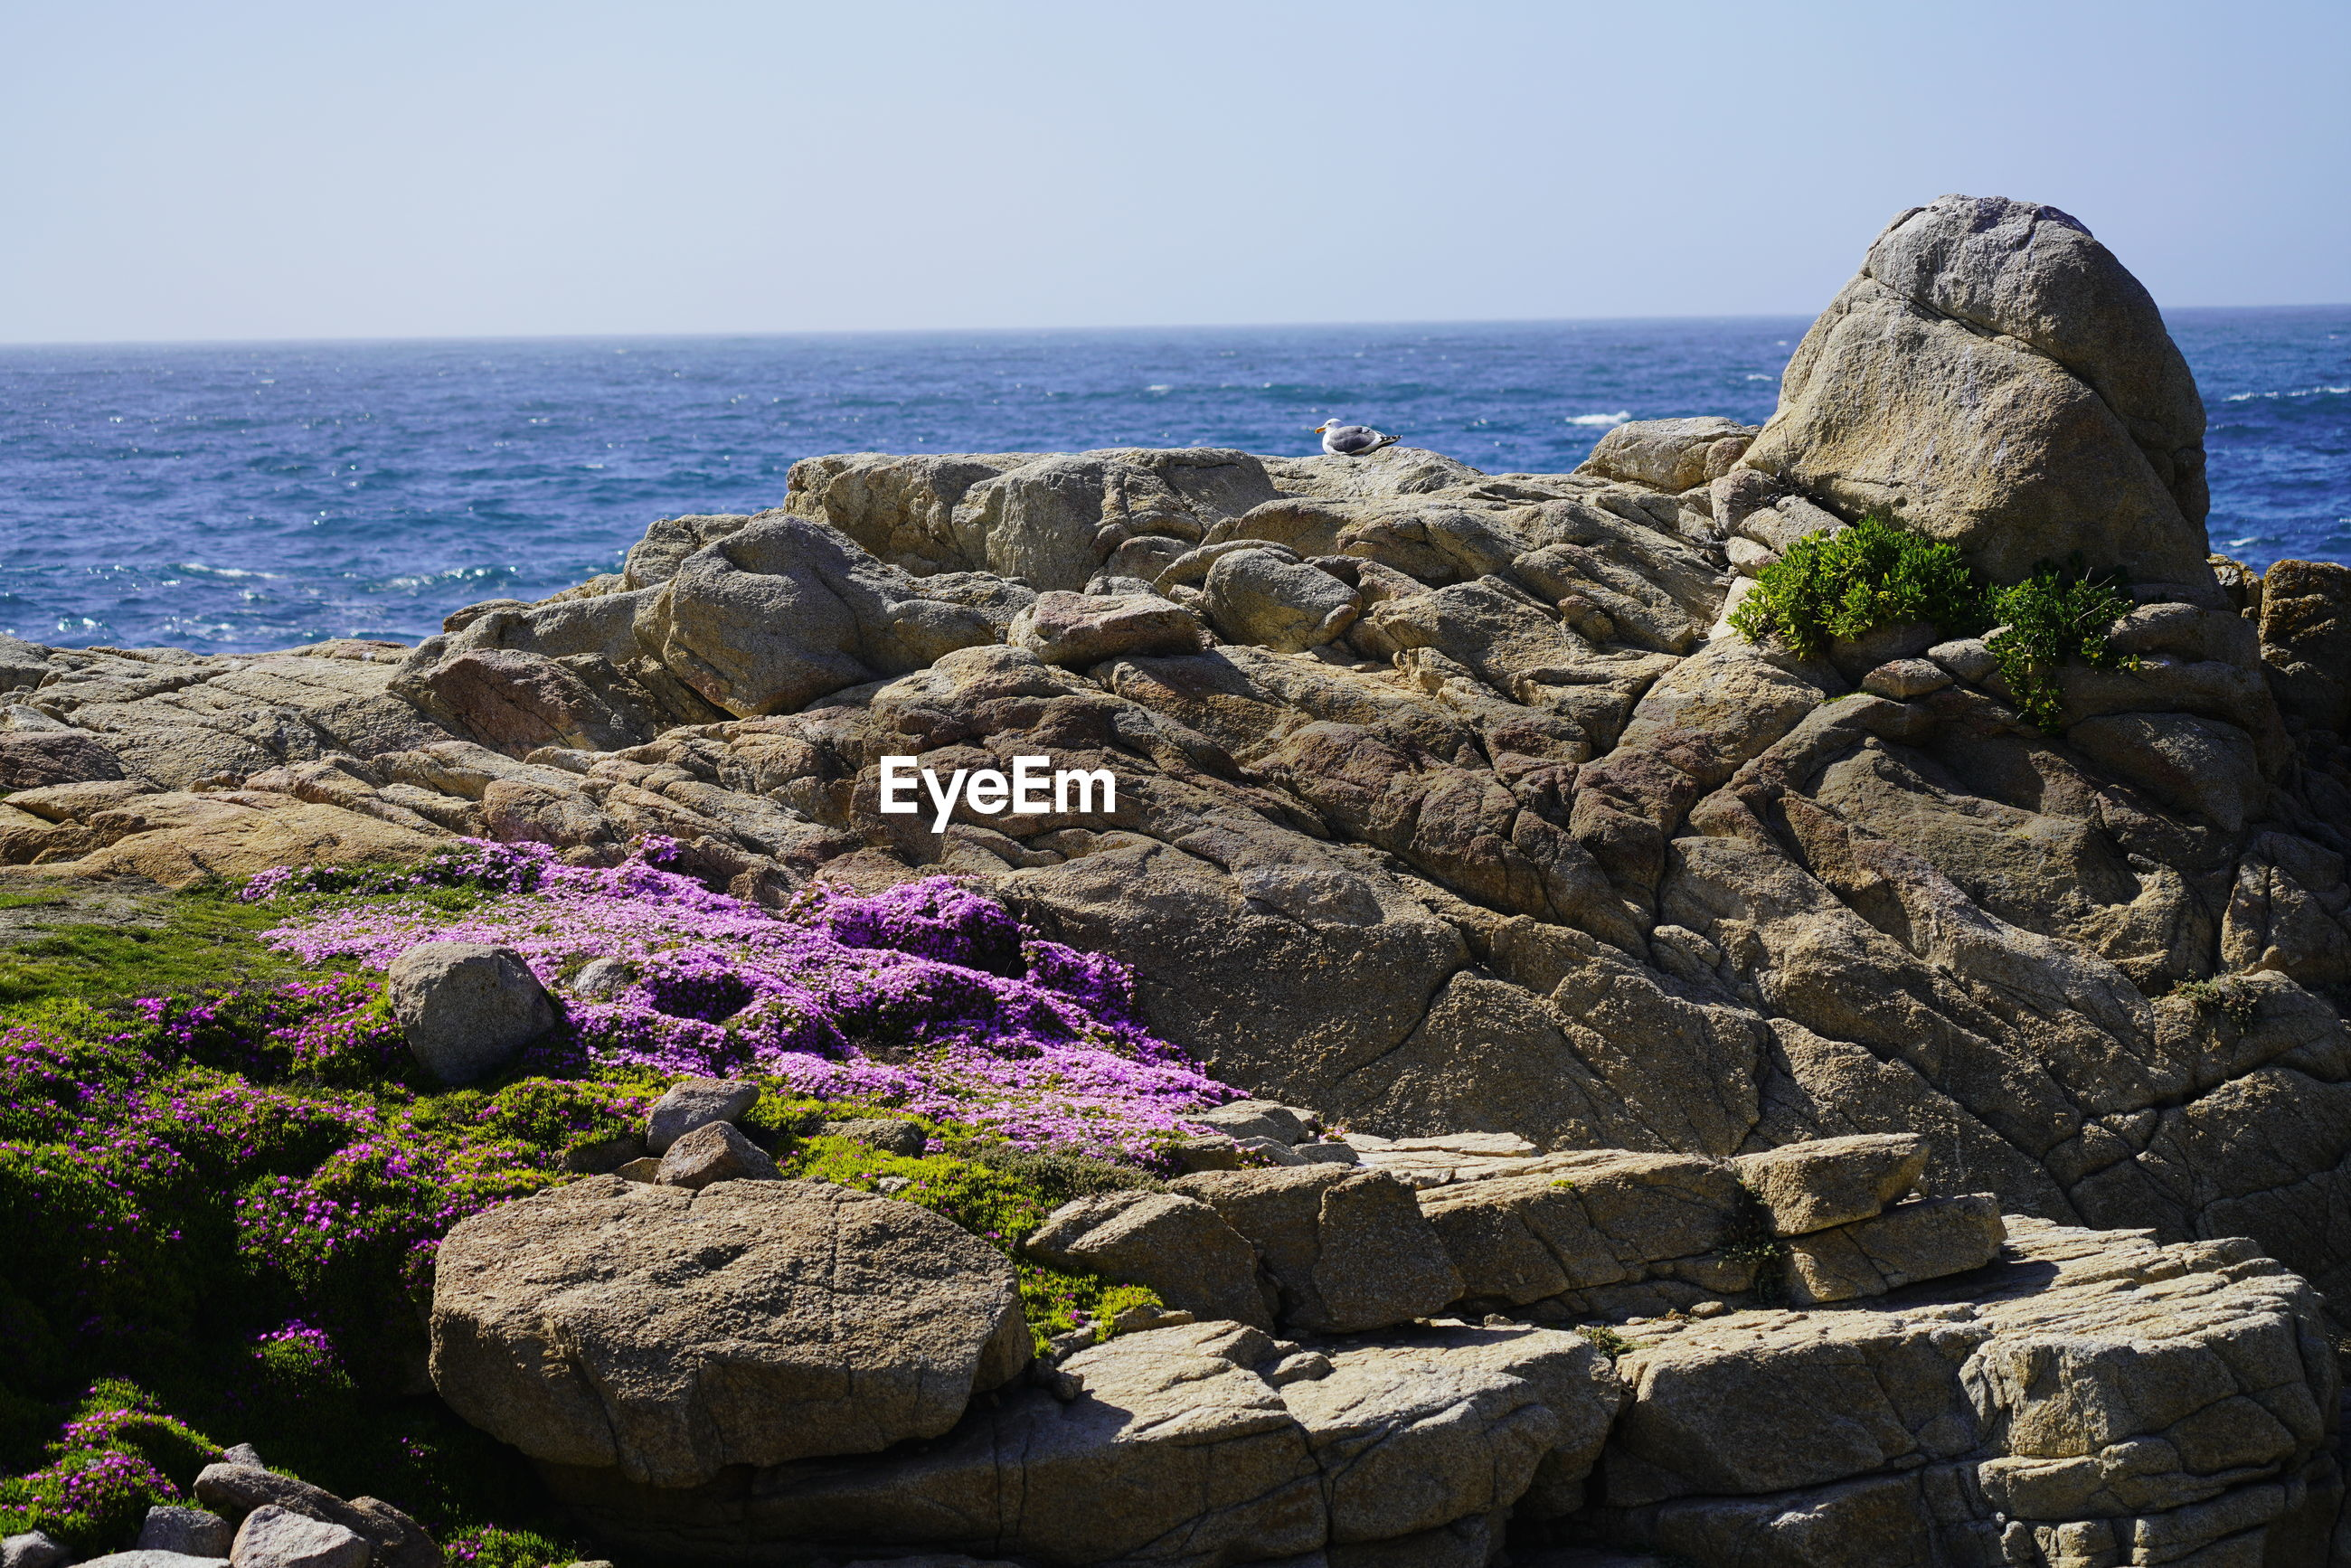 Scenic view of rocks by sea against sky